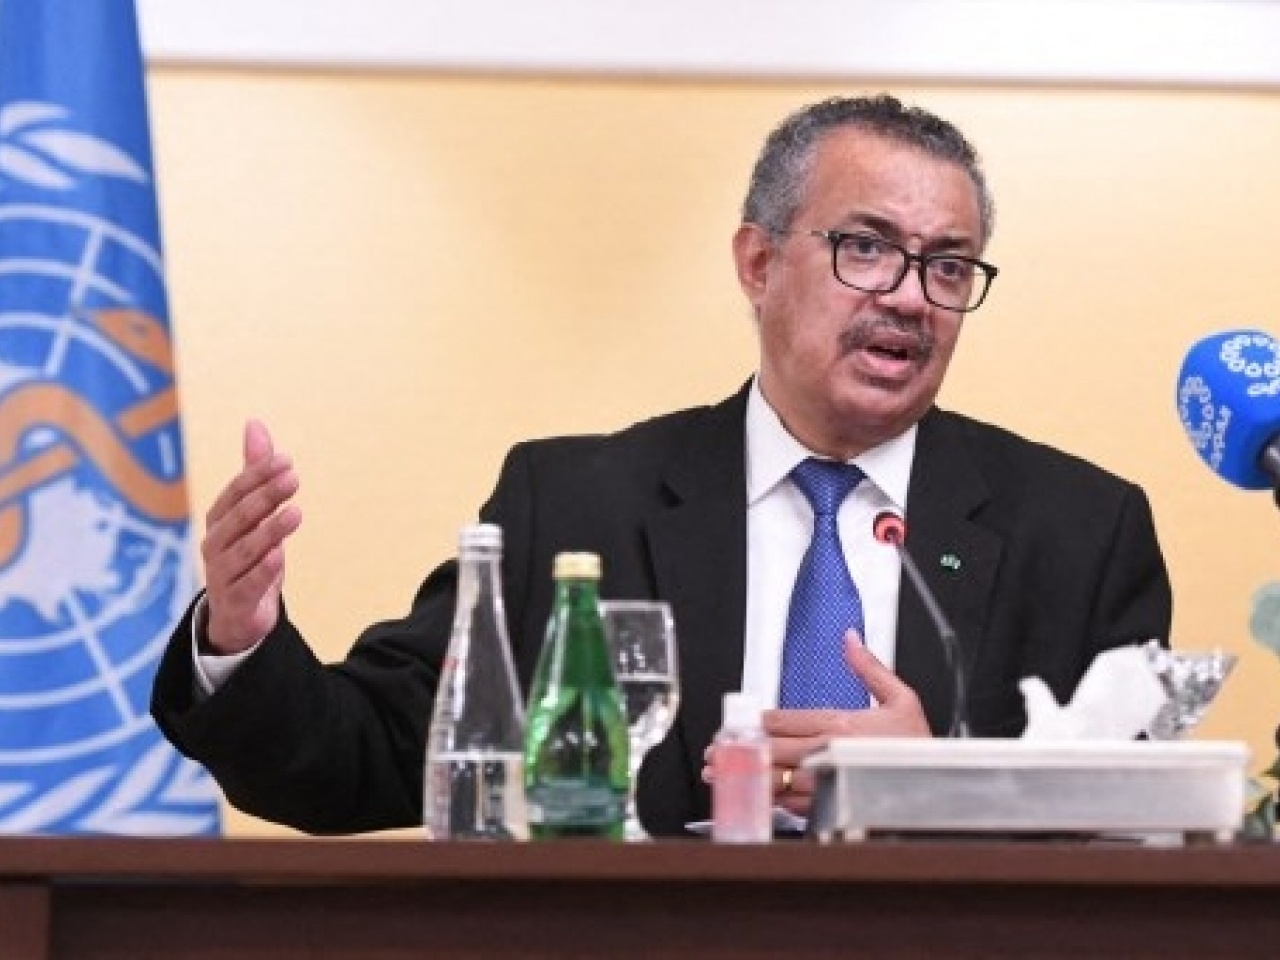 WHO chief Tedros Adhanom Ghebreyesus had said more vaccines should go to poorer countries before boosters are given. Photo: AFP